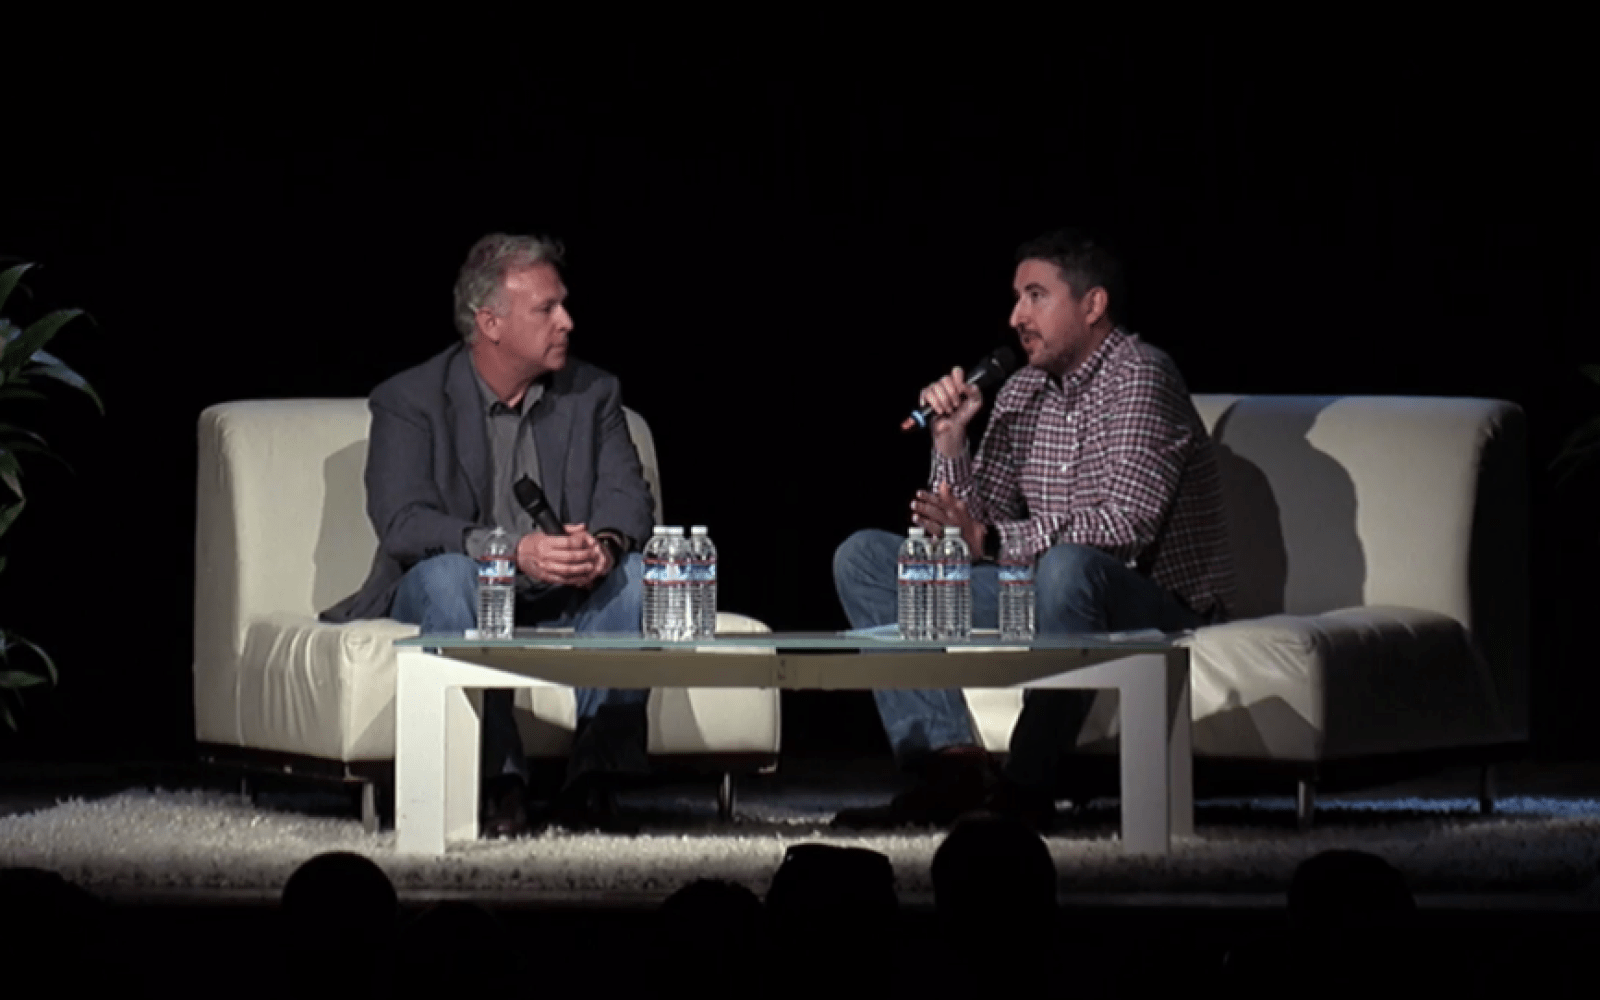 Phil Schiller talks 16GB devices, ultra-thin design, Apple Music, and more during interview